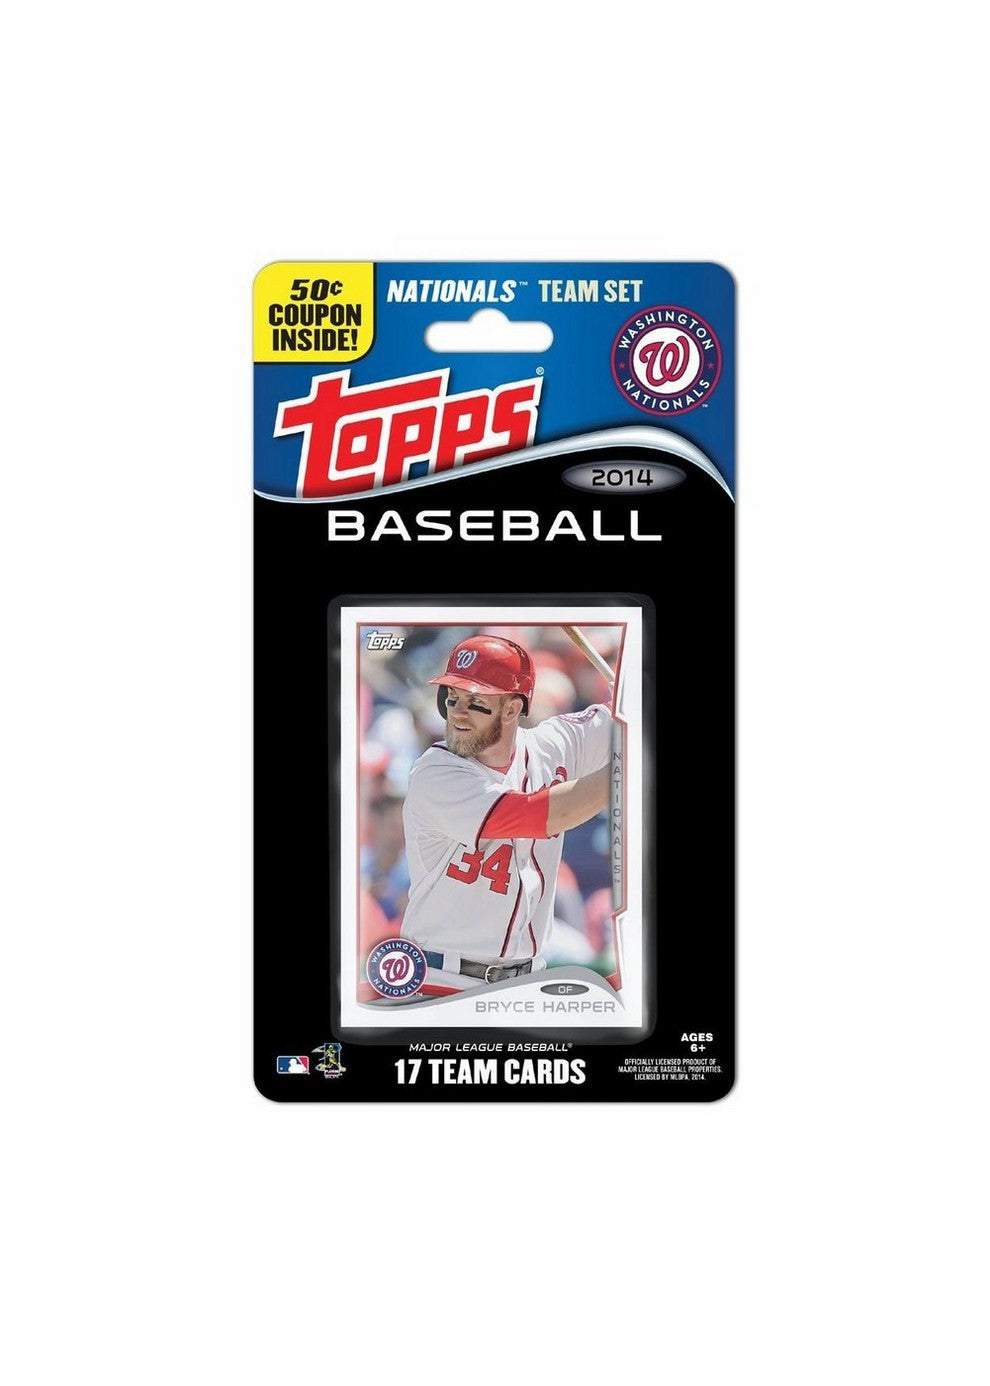 2014 Topps MLB Sets Washington Nationals